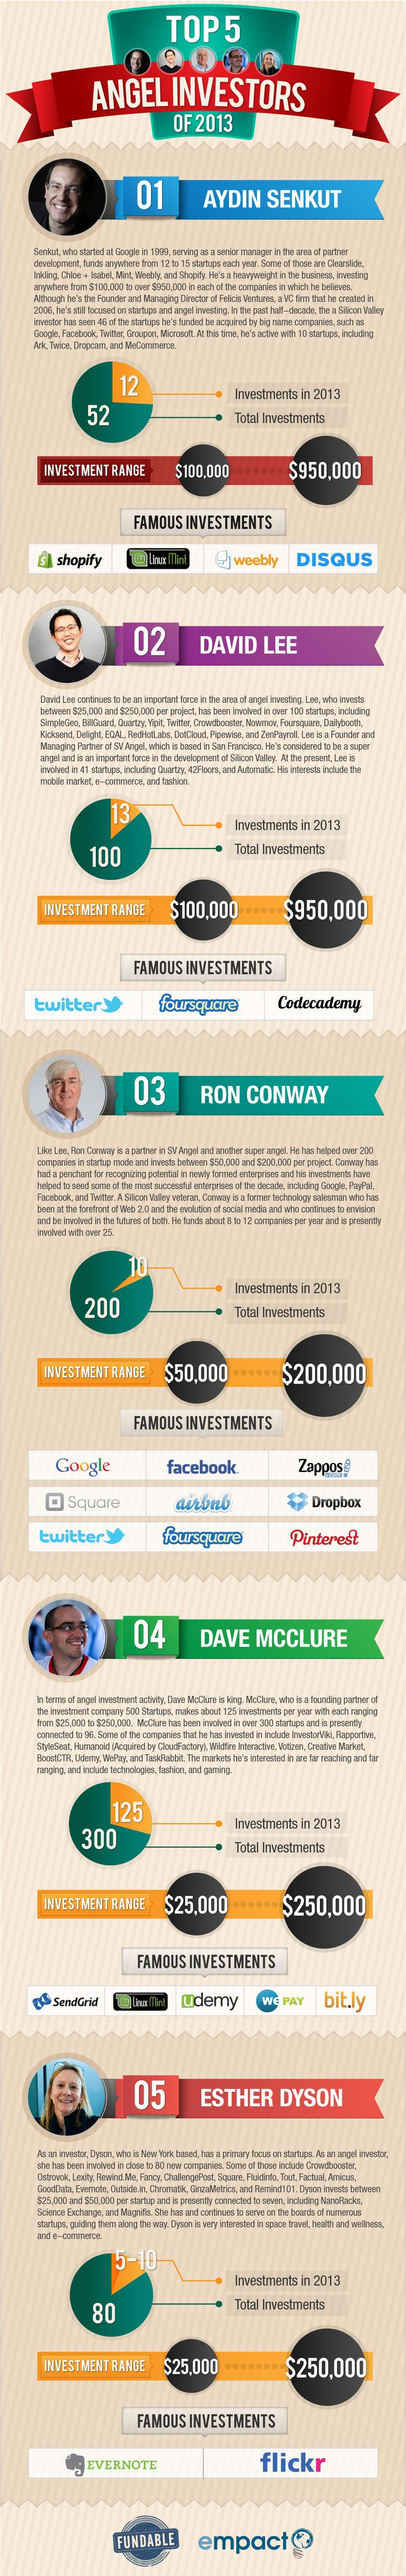 Meet the Top 5 Angel Investors of 2013 (Infographic) http://www.manhattanstreetcapital.com/